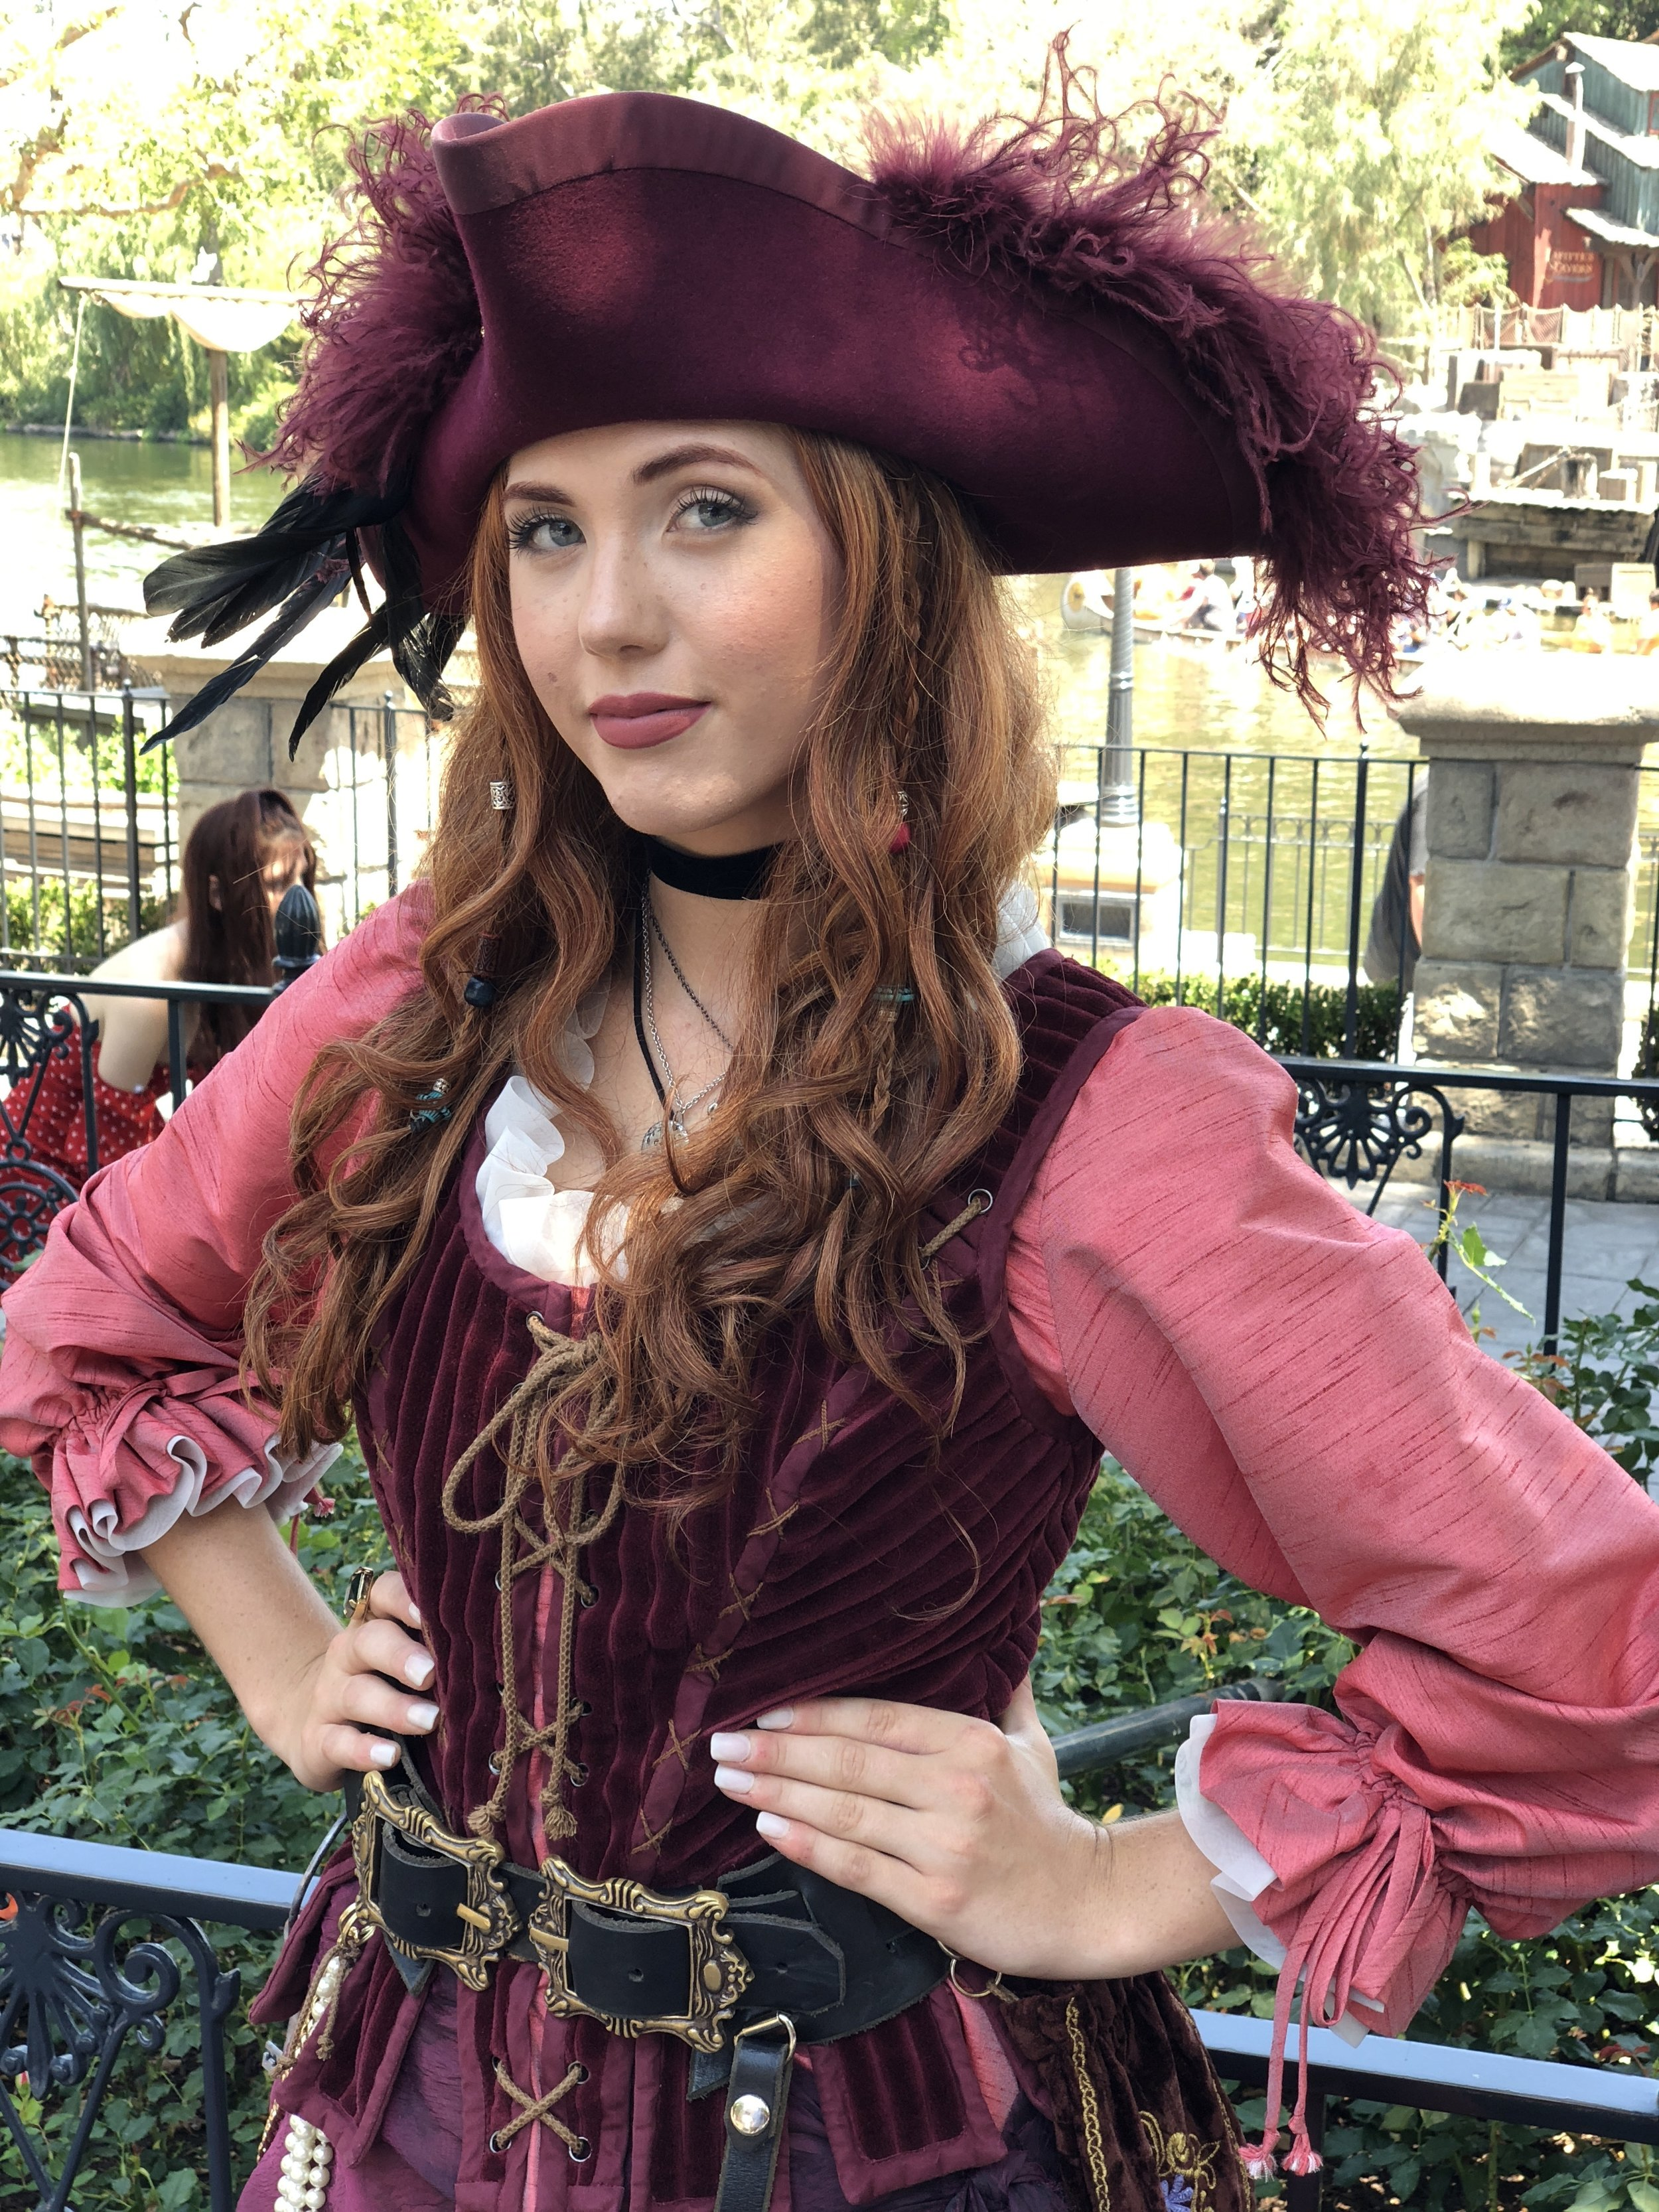 'Red' from Pirates of the Caribbean